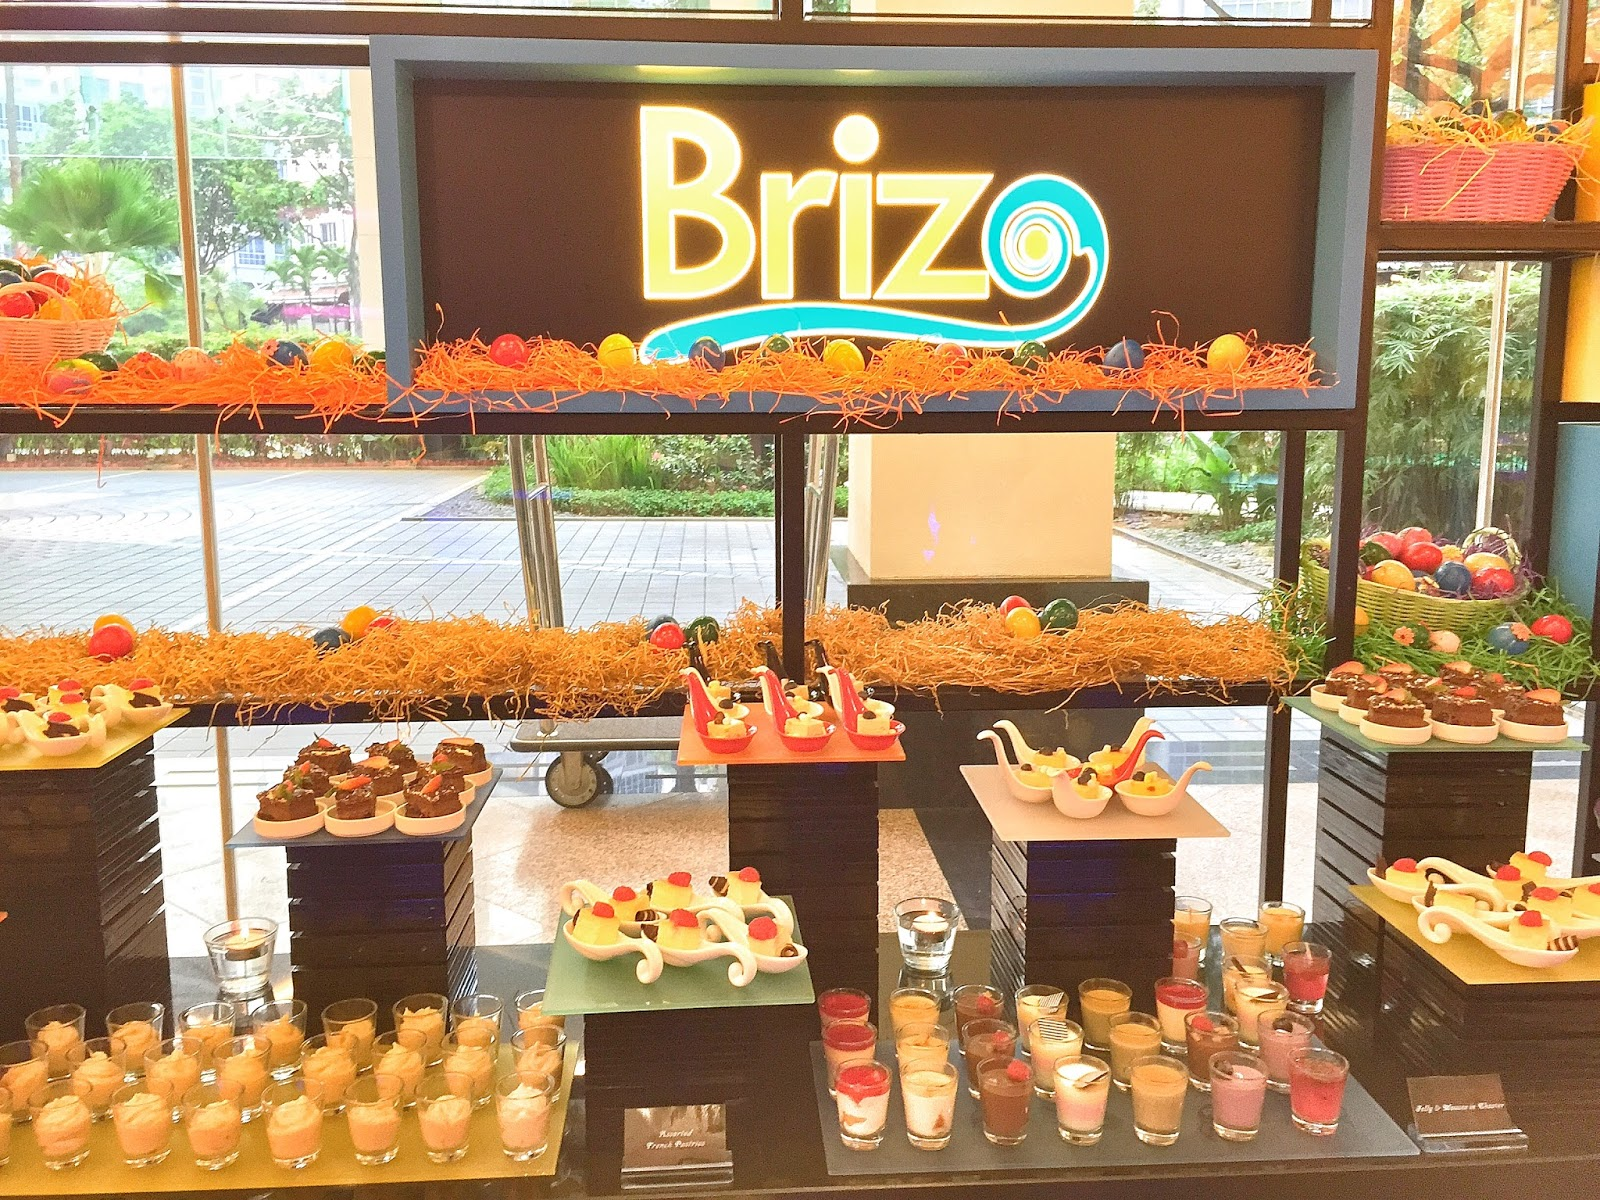 Brizo Restaurant and Bar - Desserts